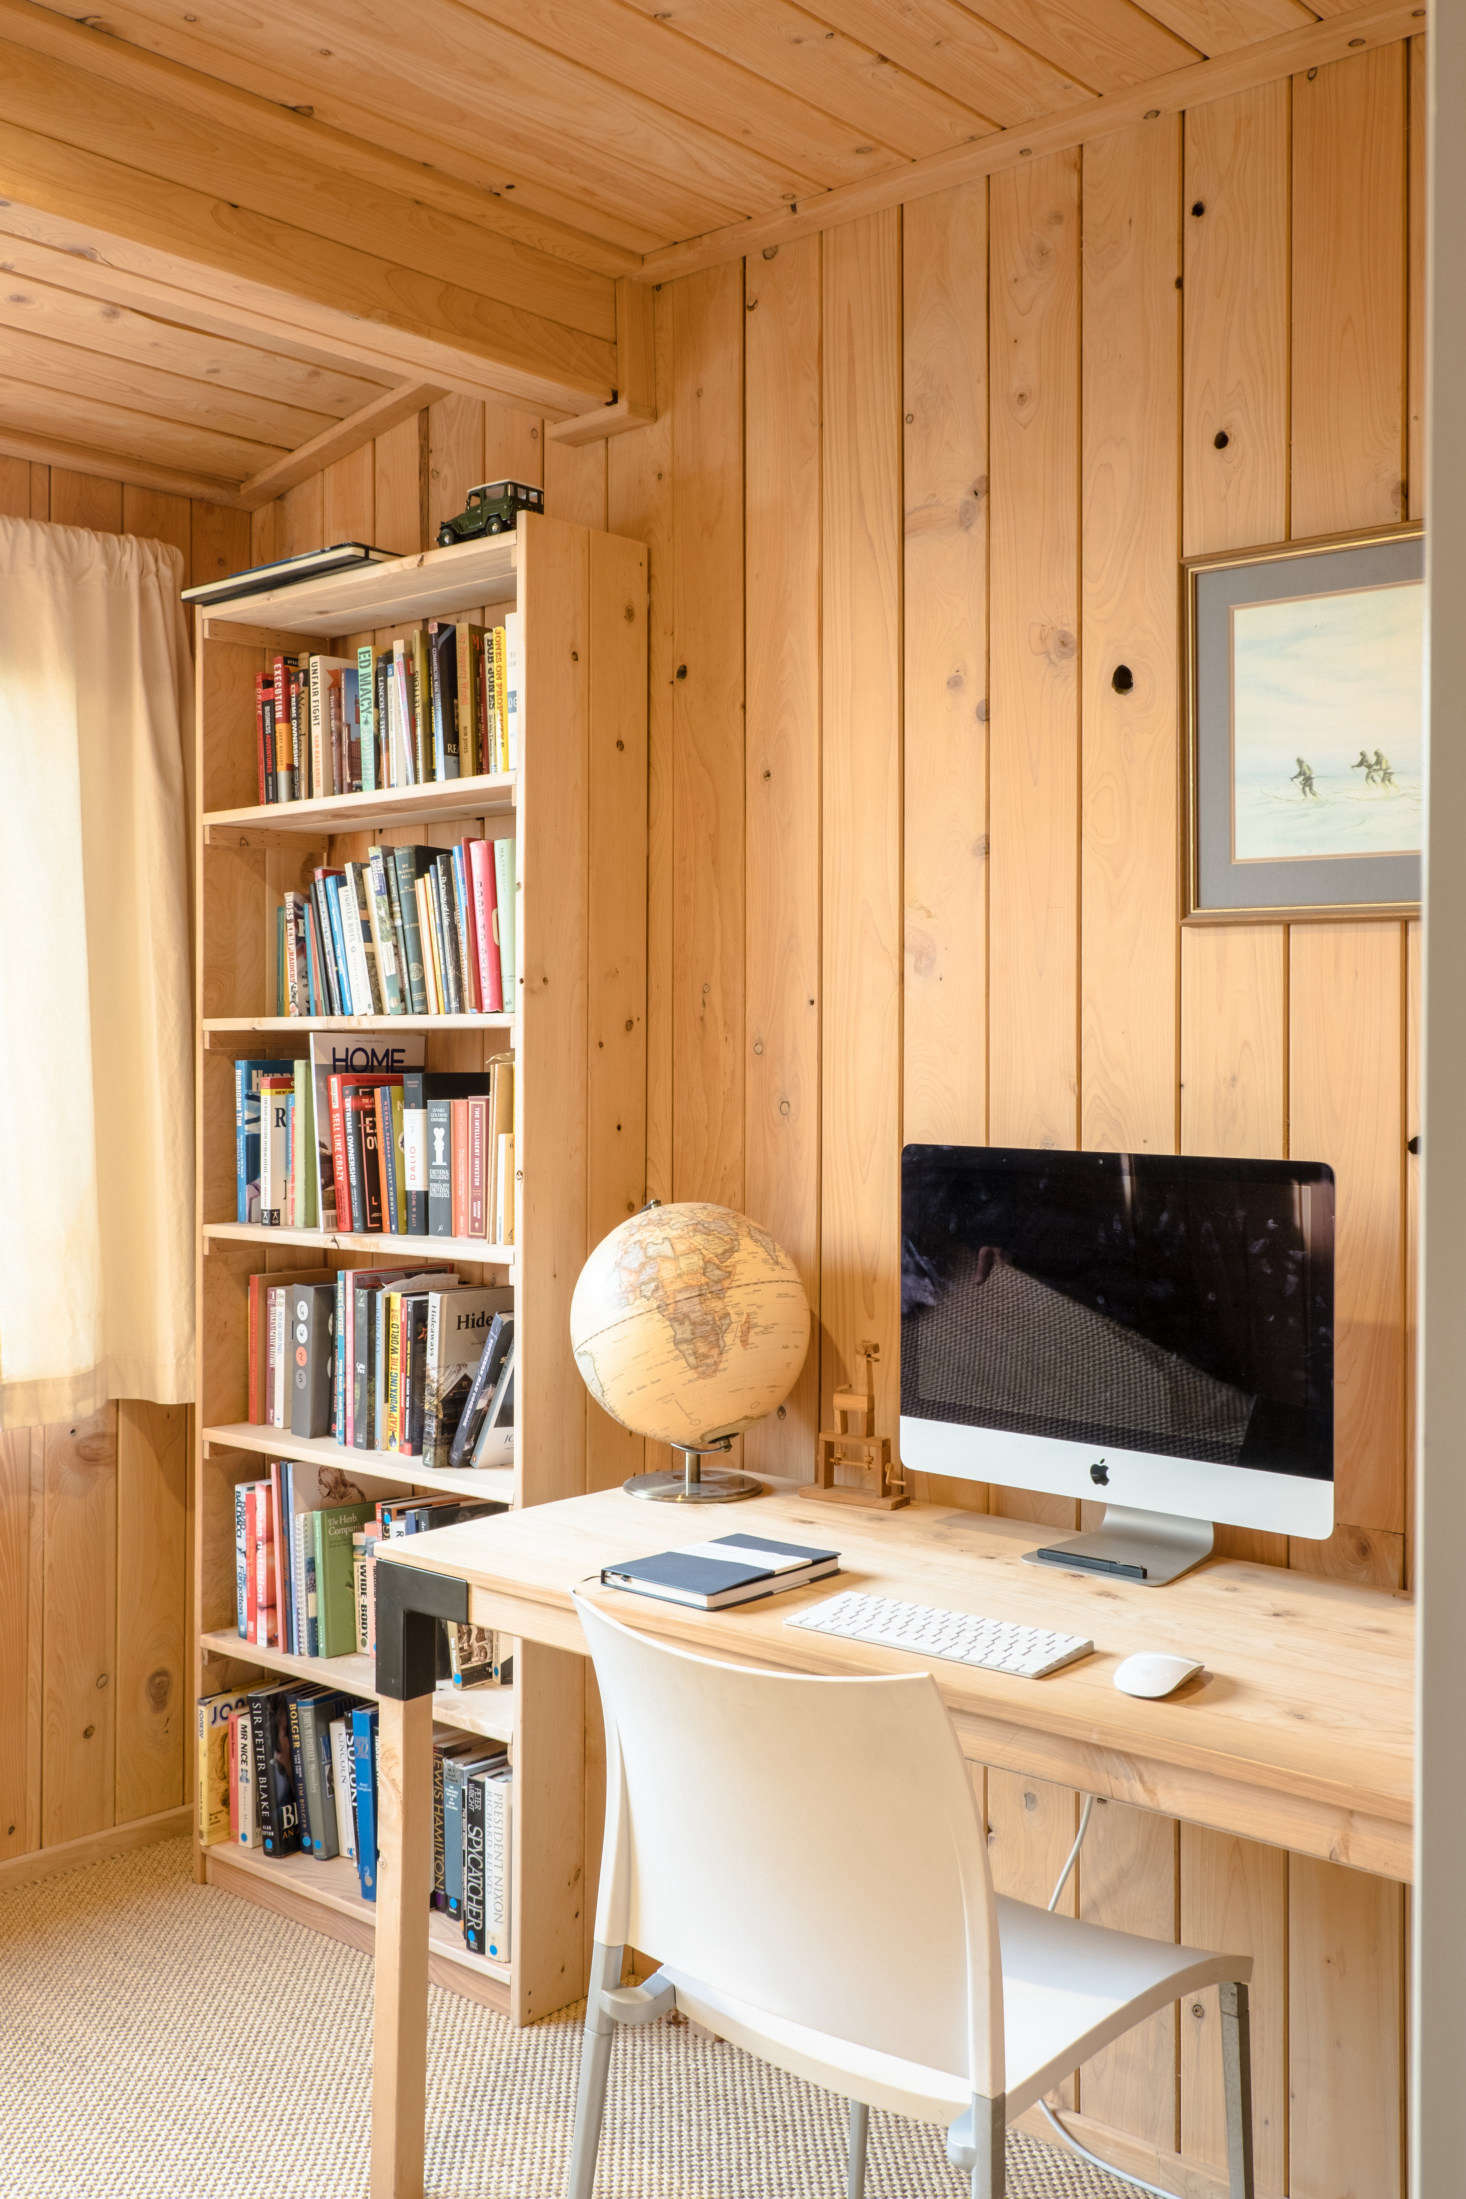 The fully paneled office has a desk and bookshelf that George fabricated from leftover macrocarpa exterior cladding. He says he's slowly building a book collection that he hopes will one day line the room.